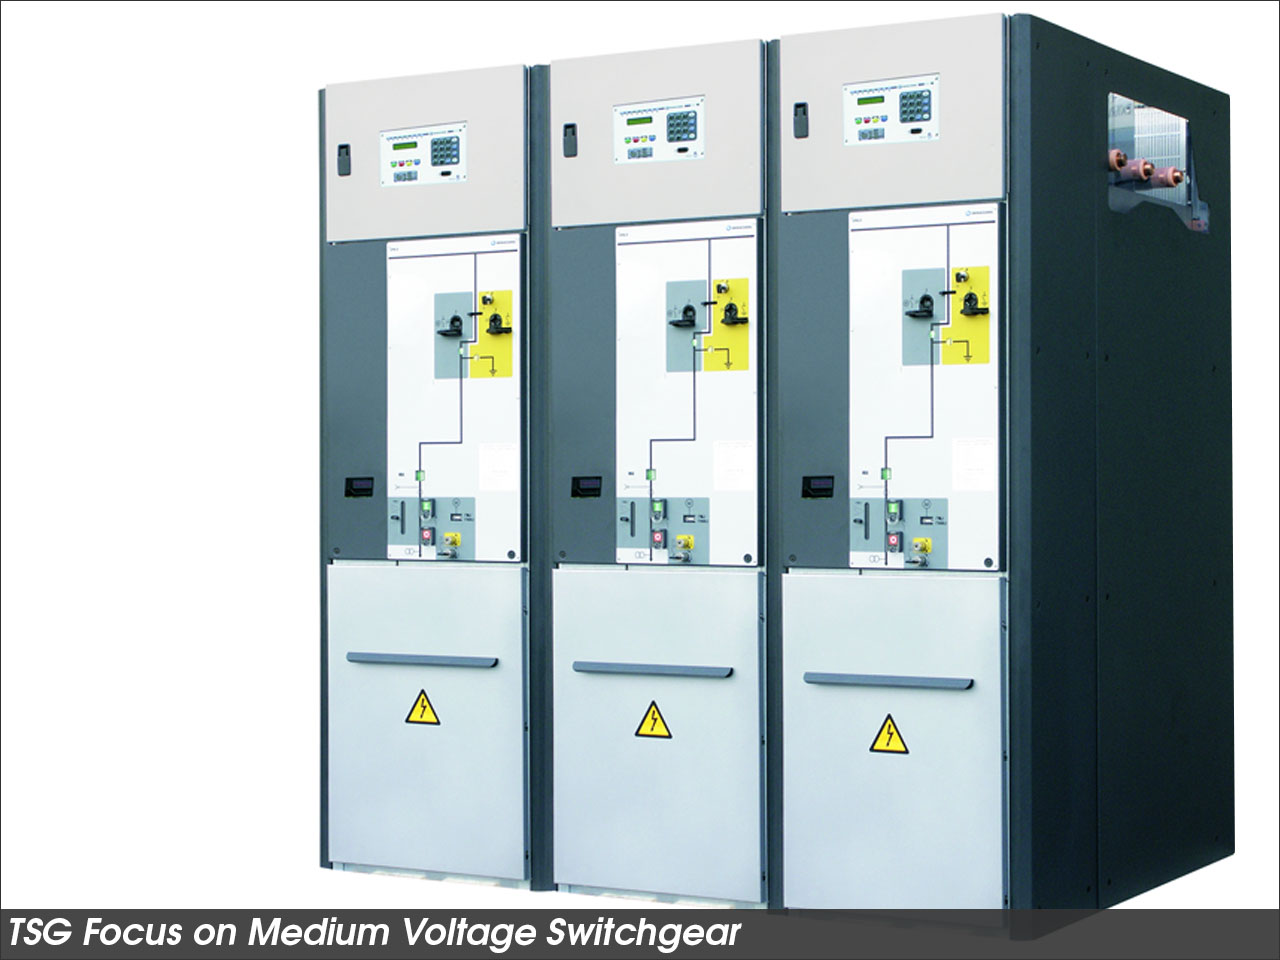 tsg_medium_voltage_switchgear